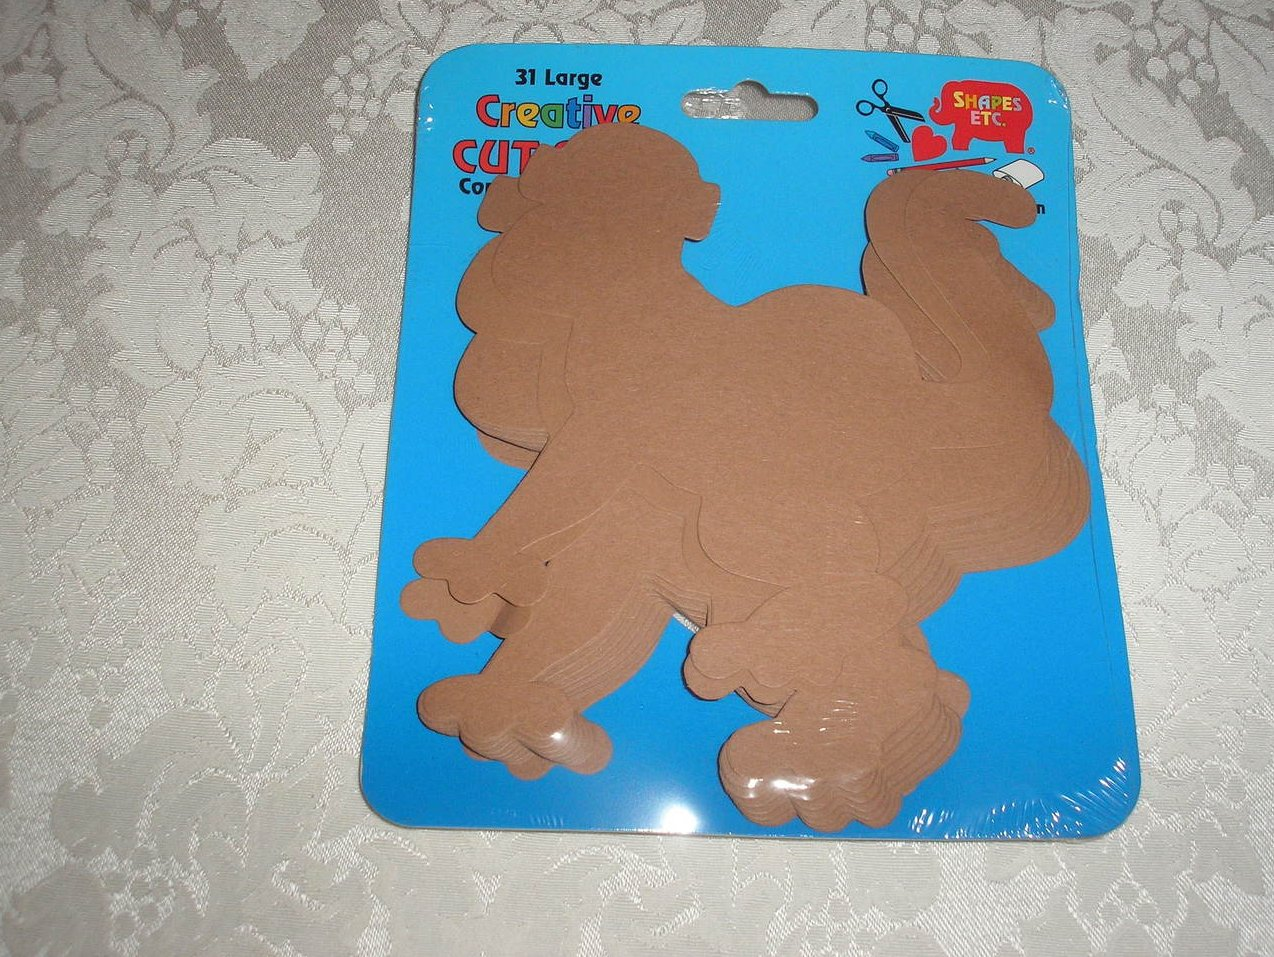 31 Large Brown Monkey Die Cuts from Shapes, Etc. new and sealed